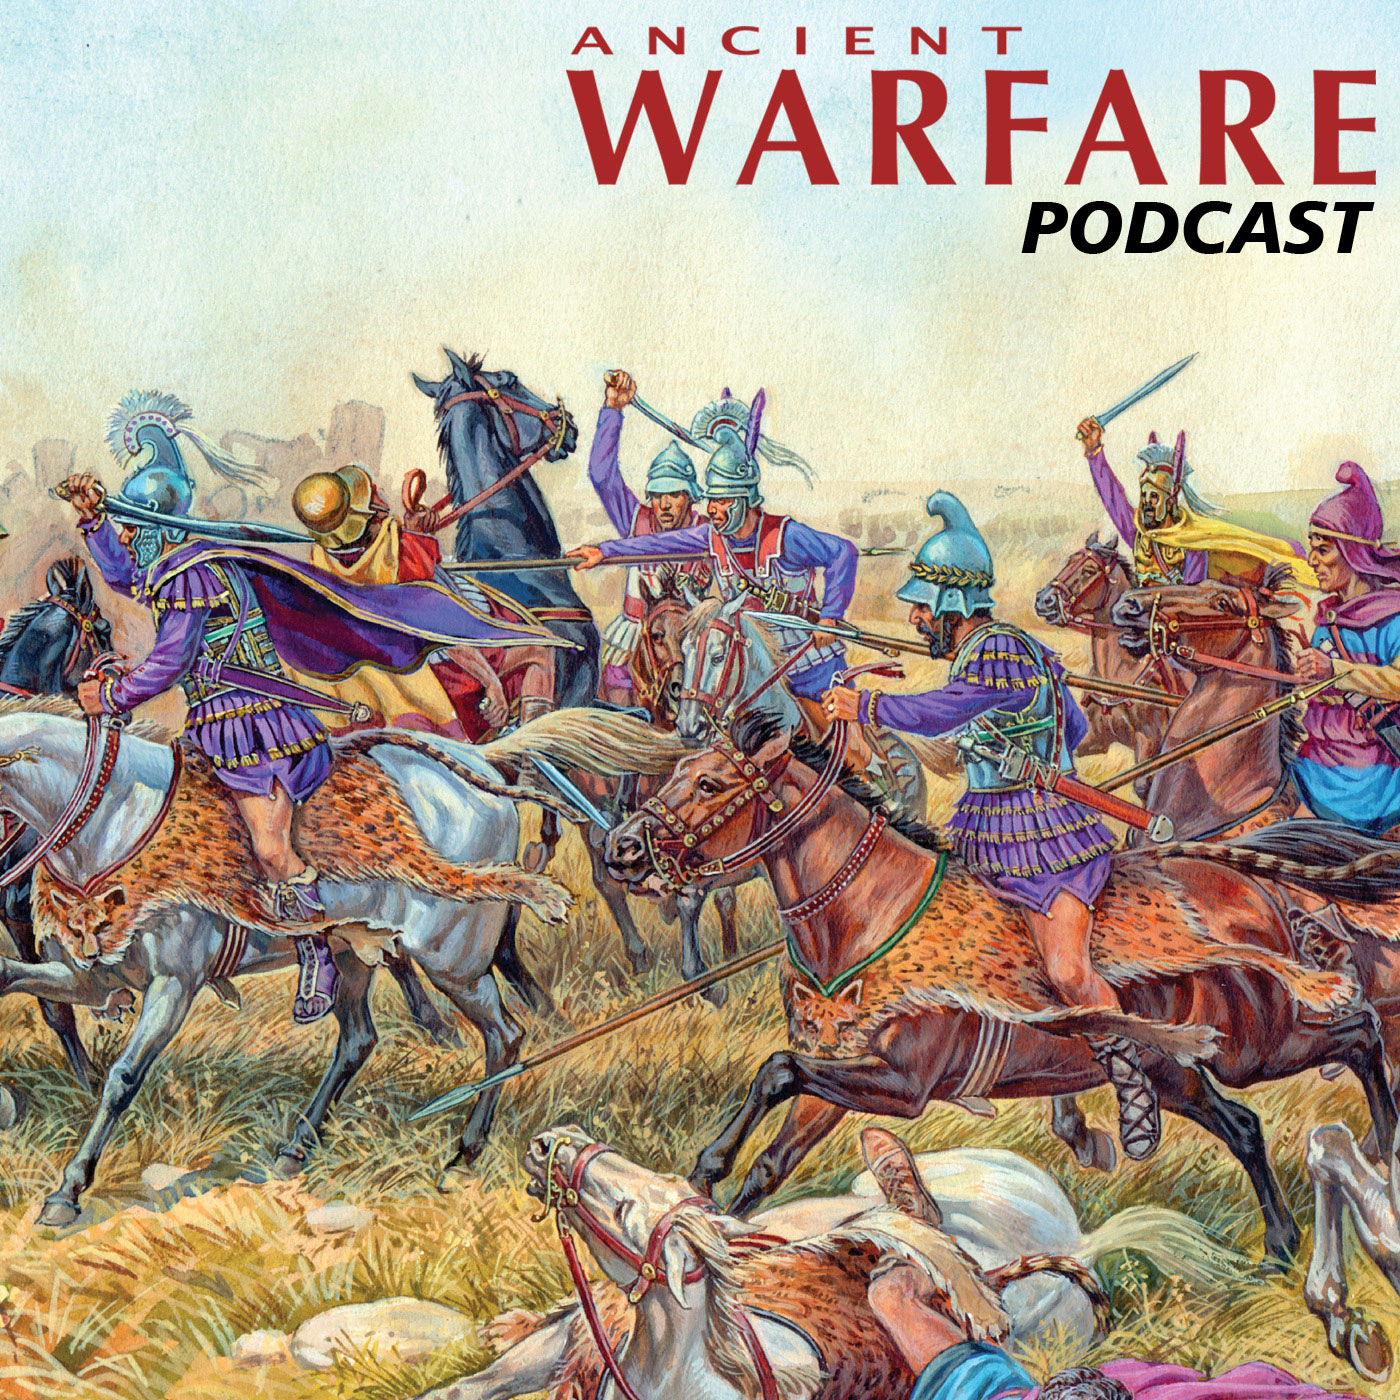 Struggle for Control: Wars In Ancient Sicily